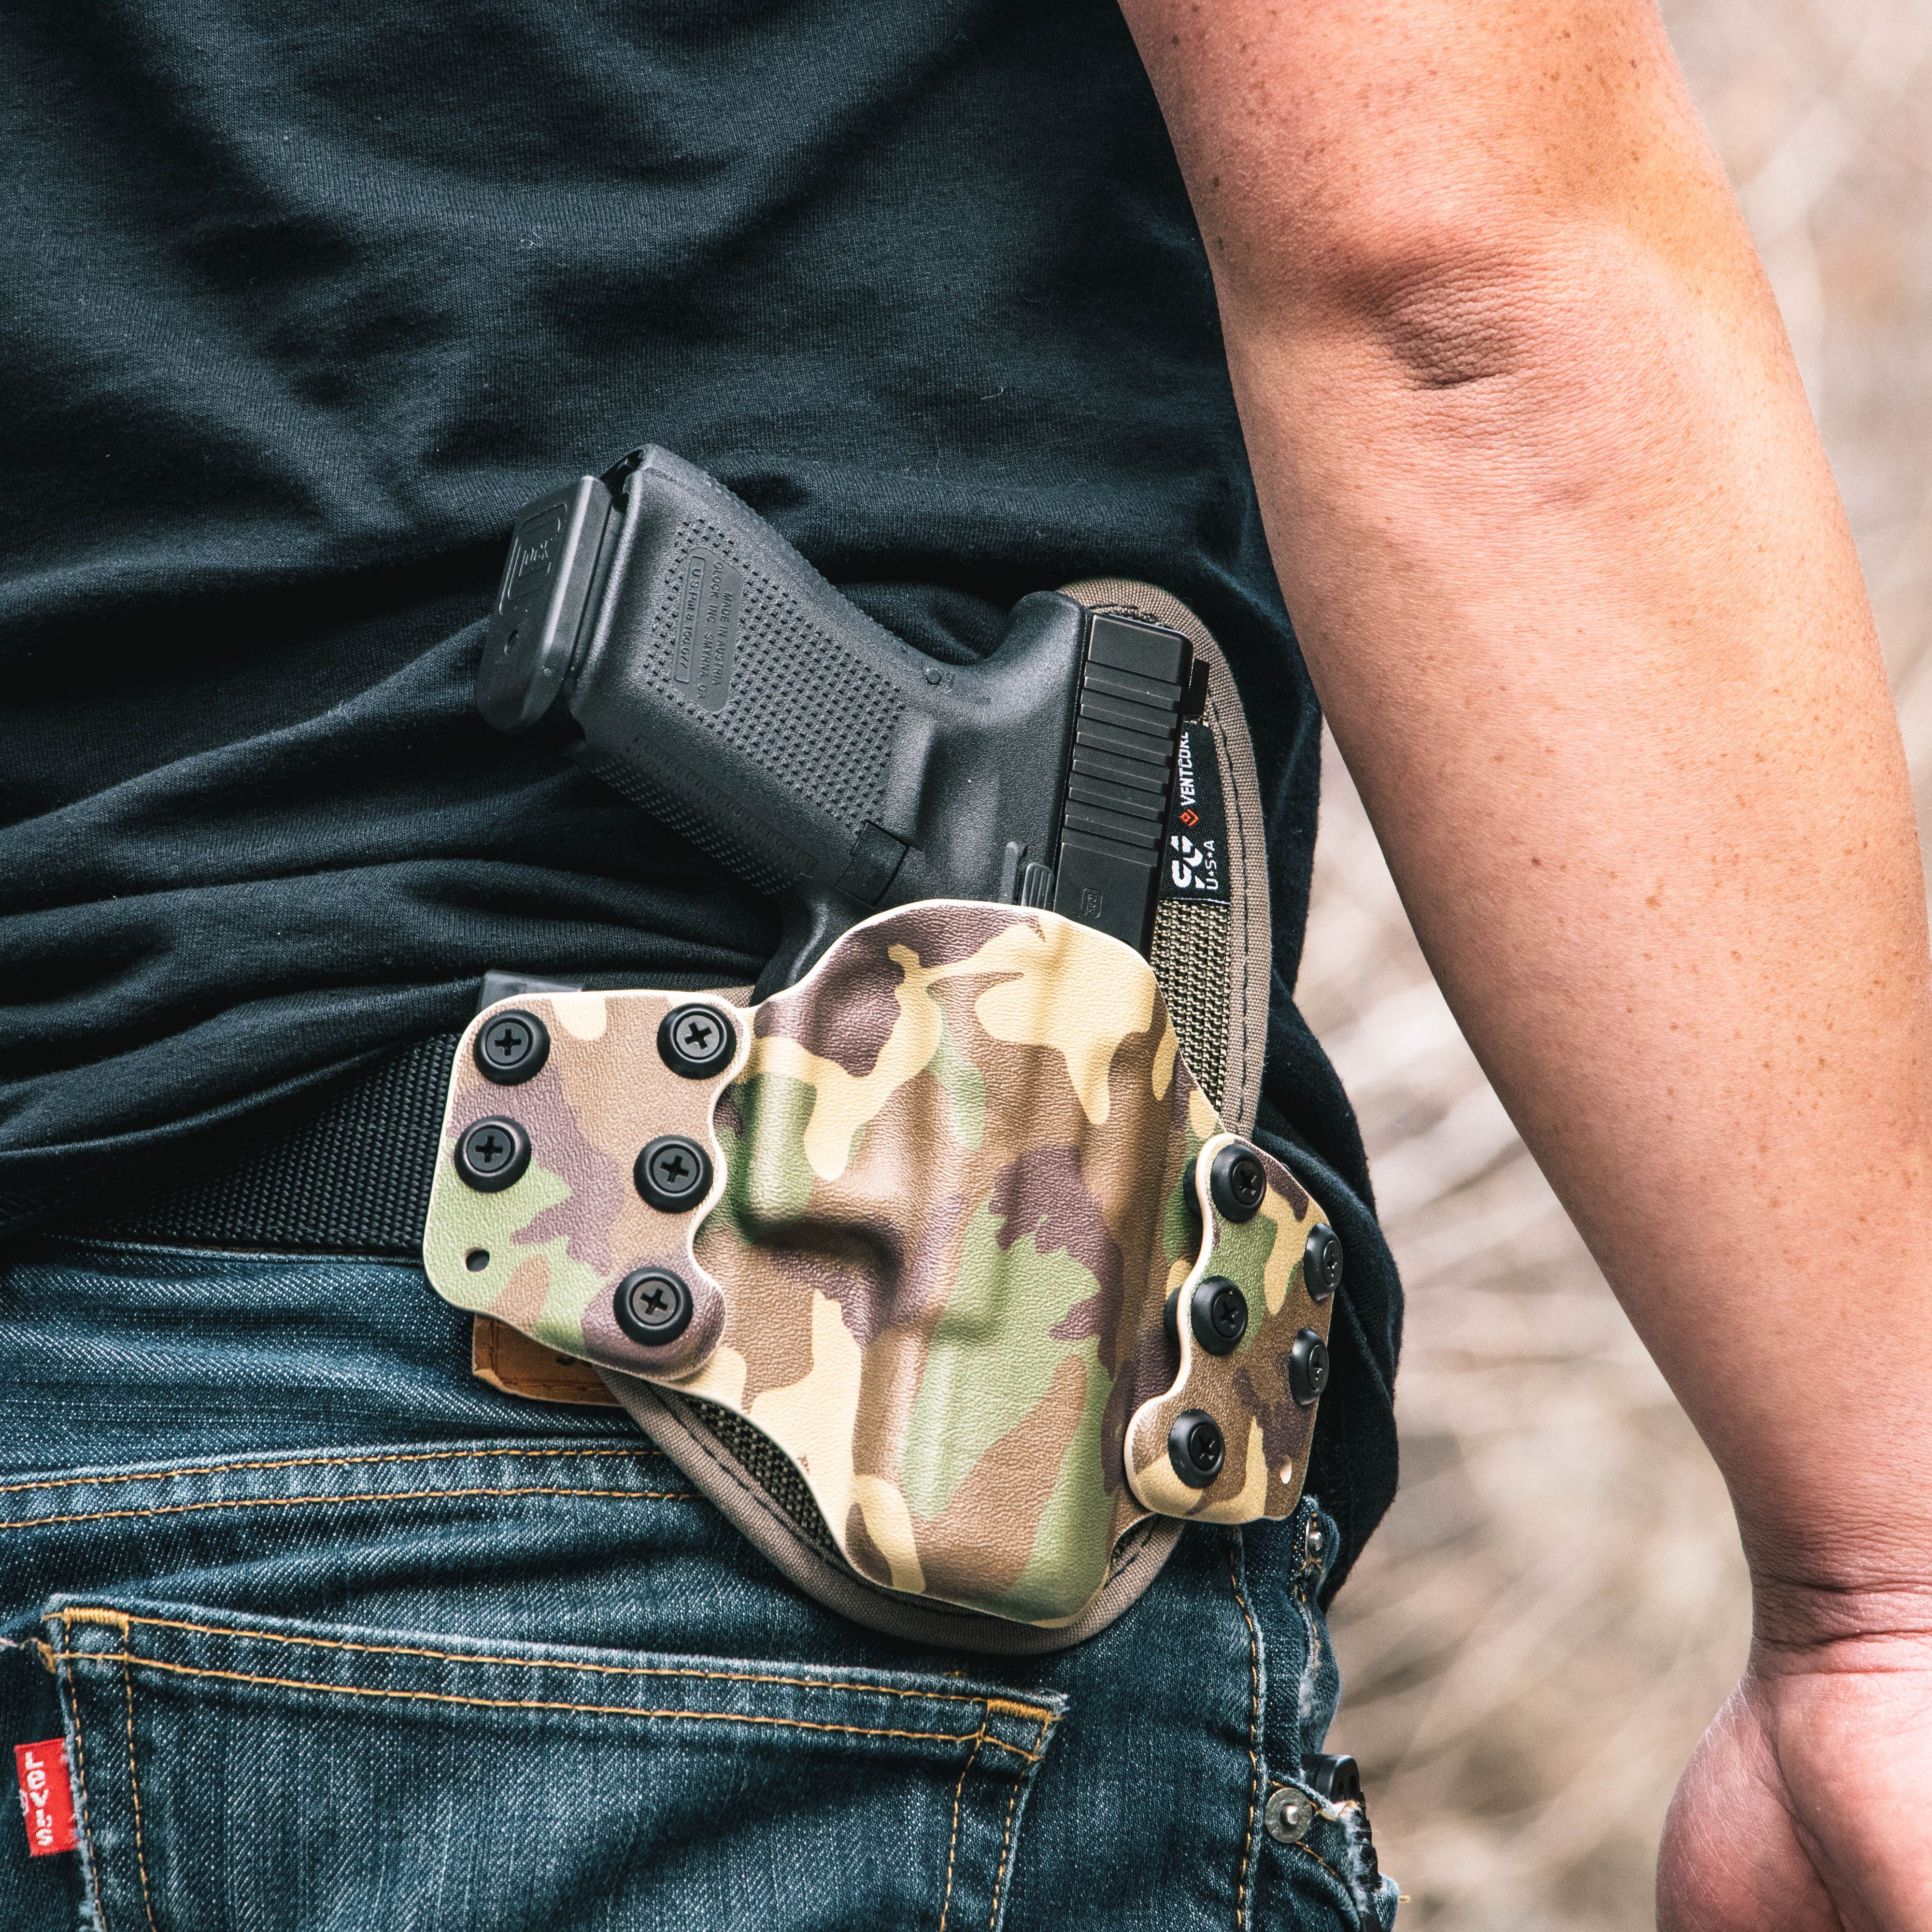 oK Open Carry OWB Paddle Holster in Carbon Fiber Hybrid Armory Holsters